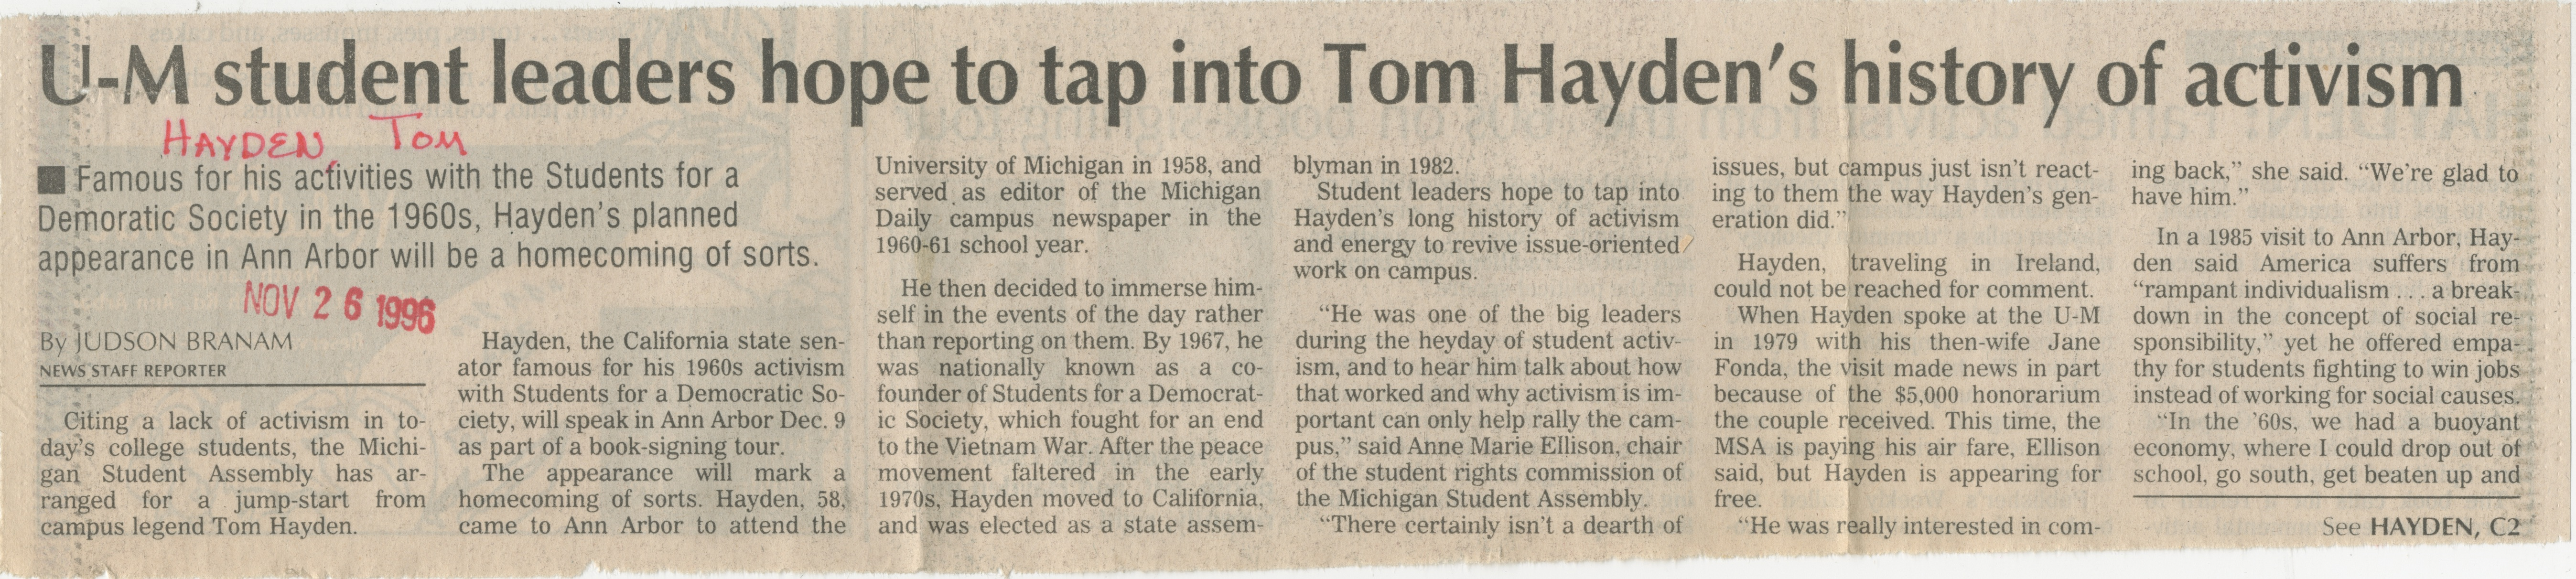 U-M Student Leaders Hope To Tap Into Tom Hayden's History Of Activism image